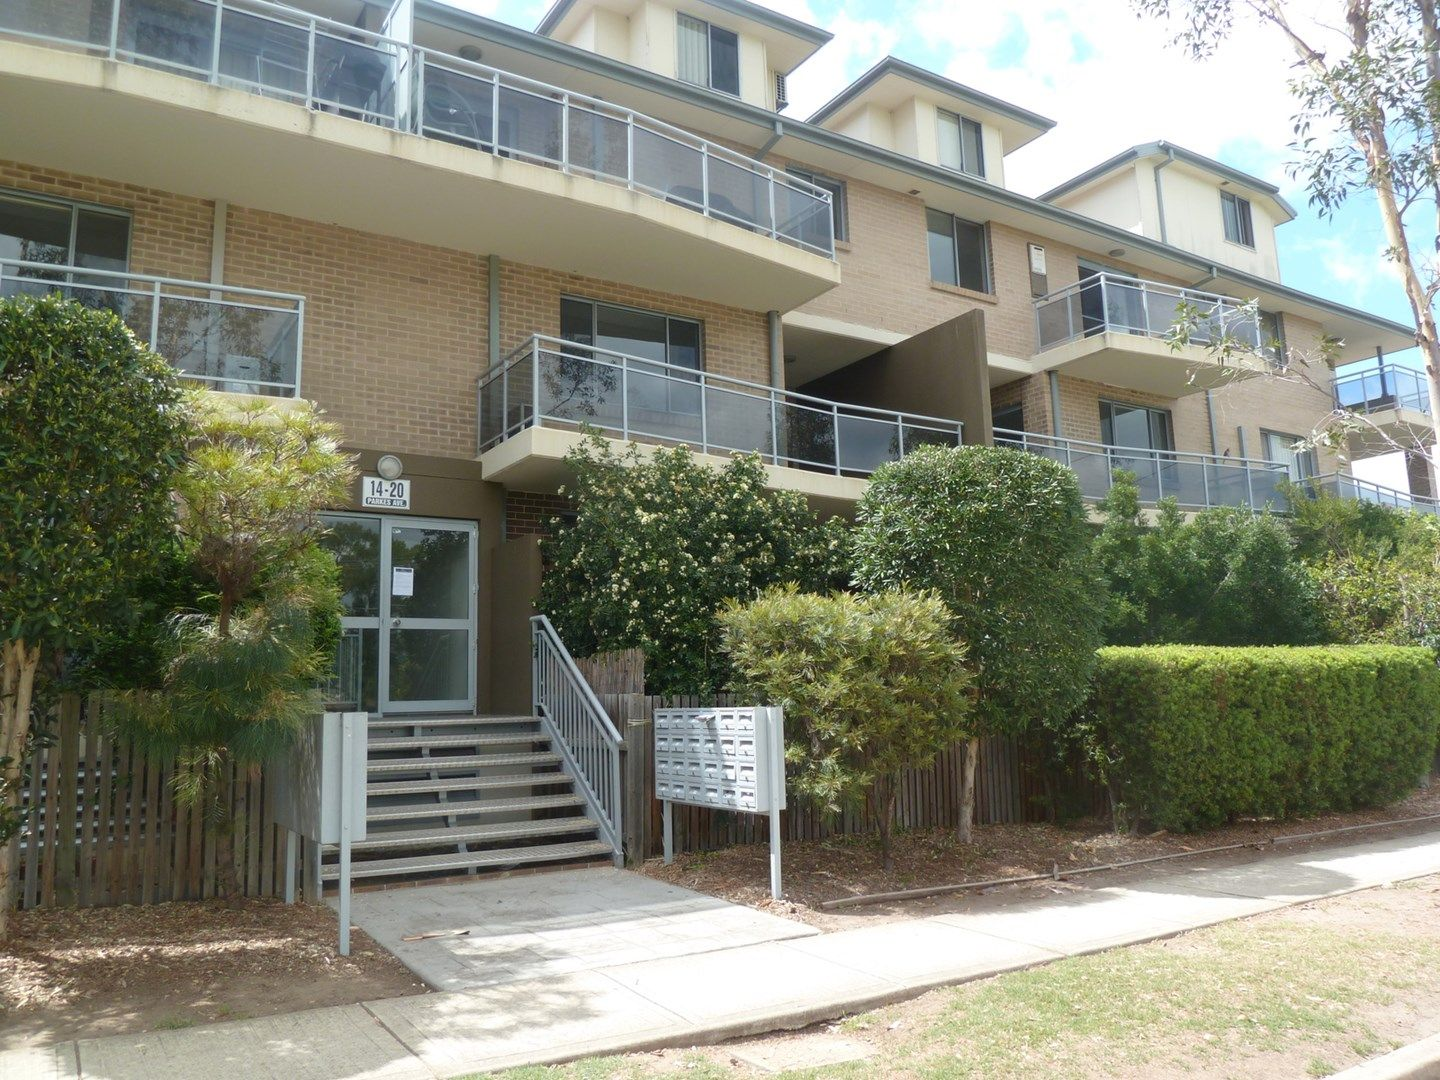 1/14-20 Parkes Avenue, Werrington NSW 2747, Image 0